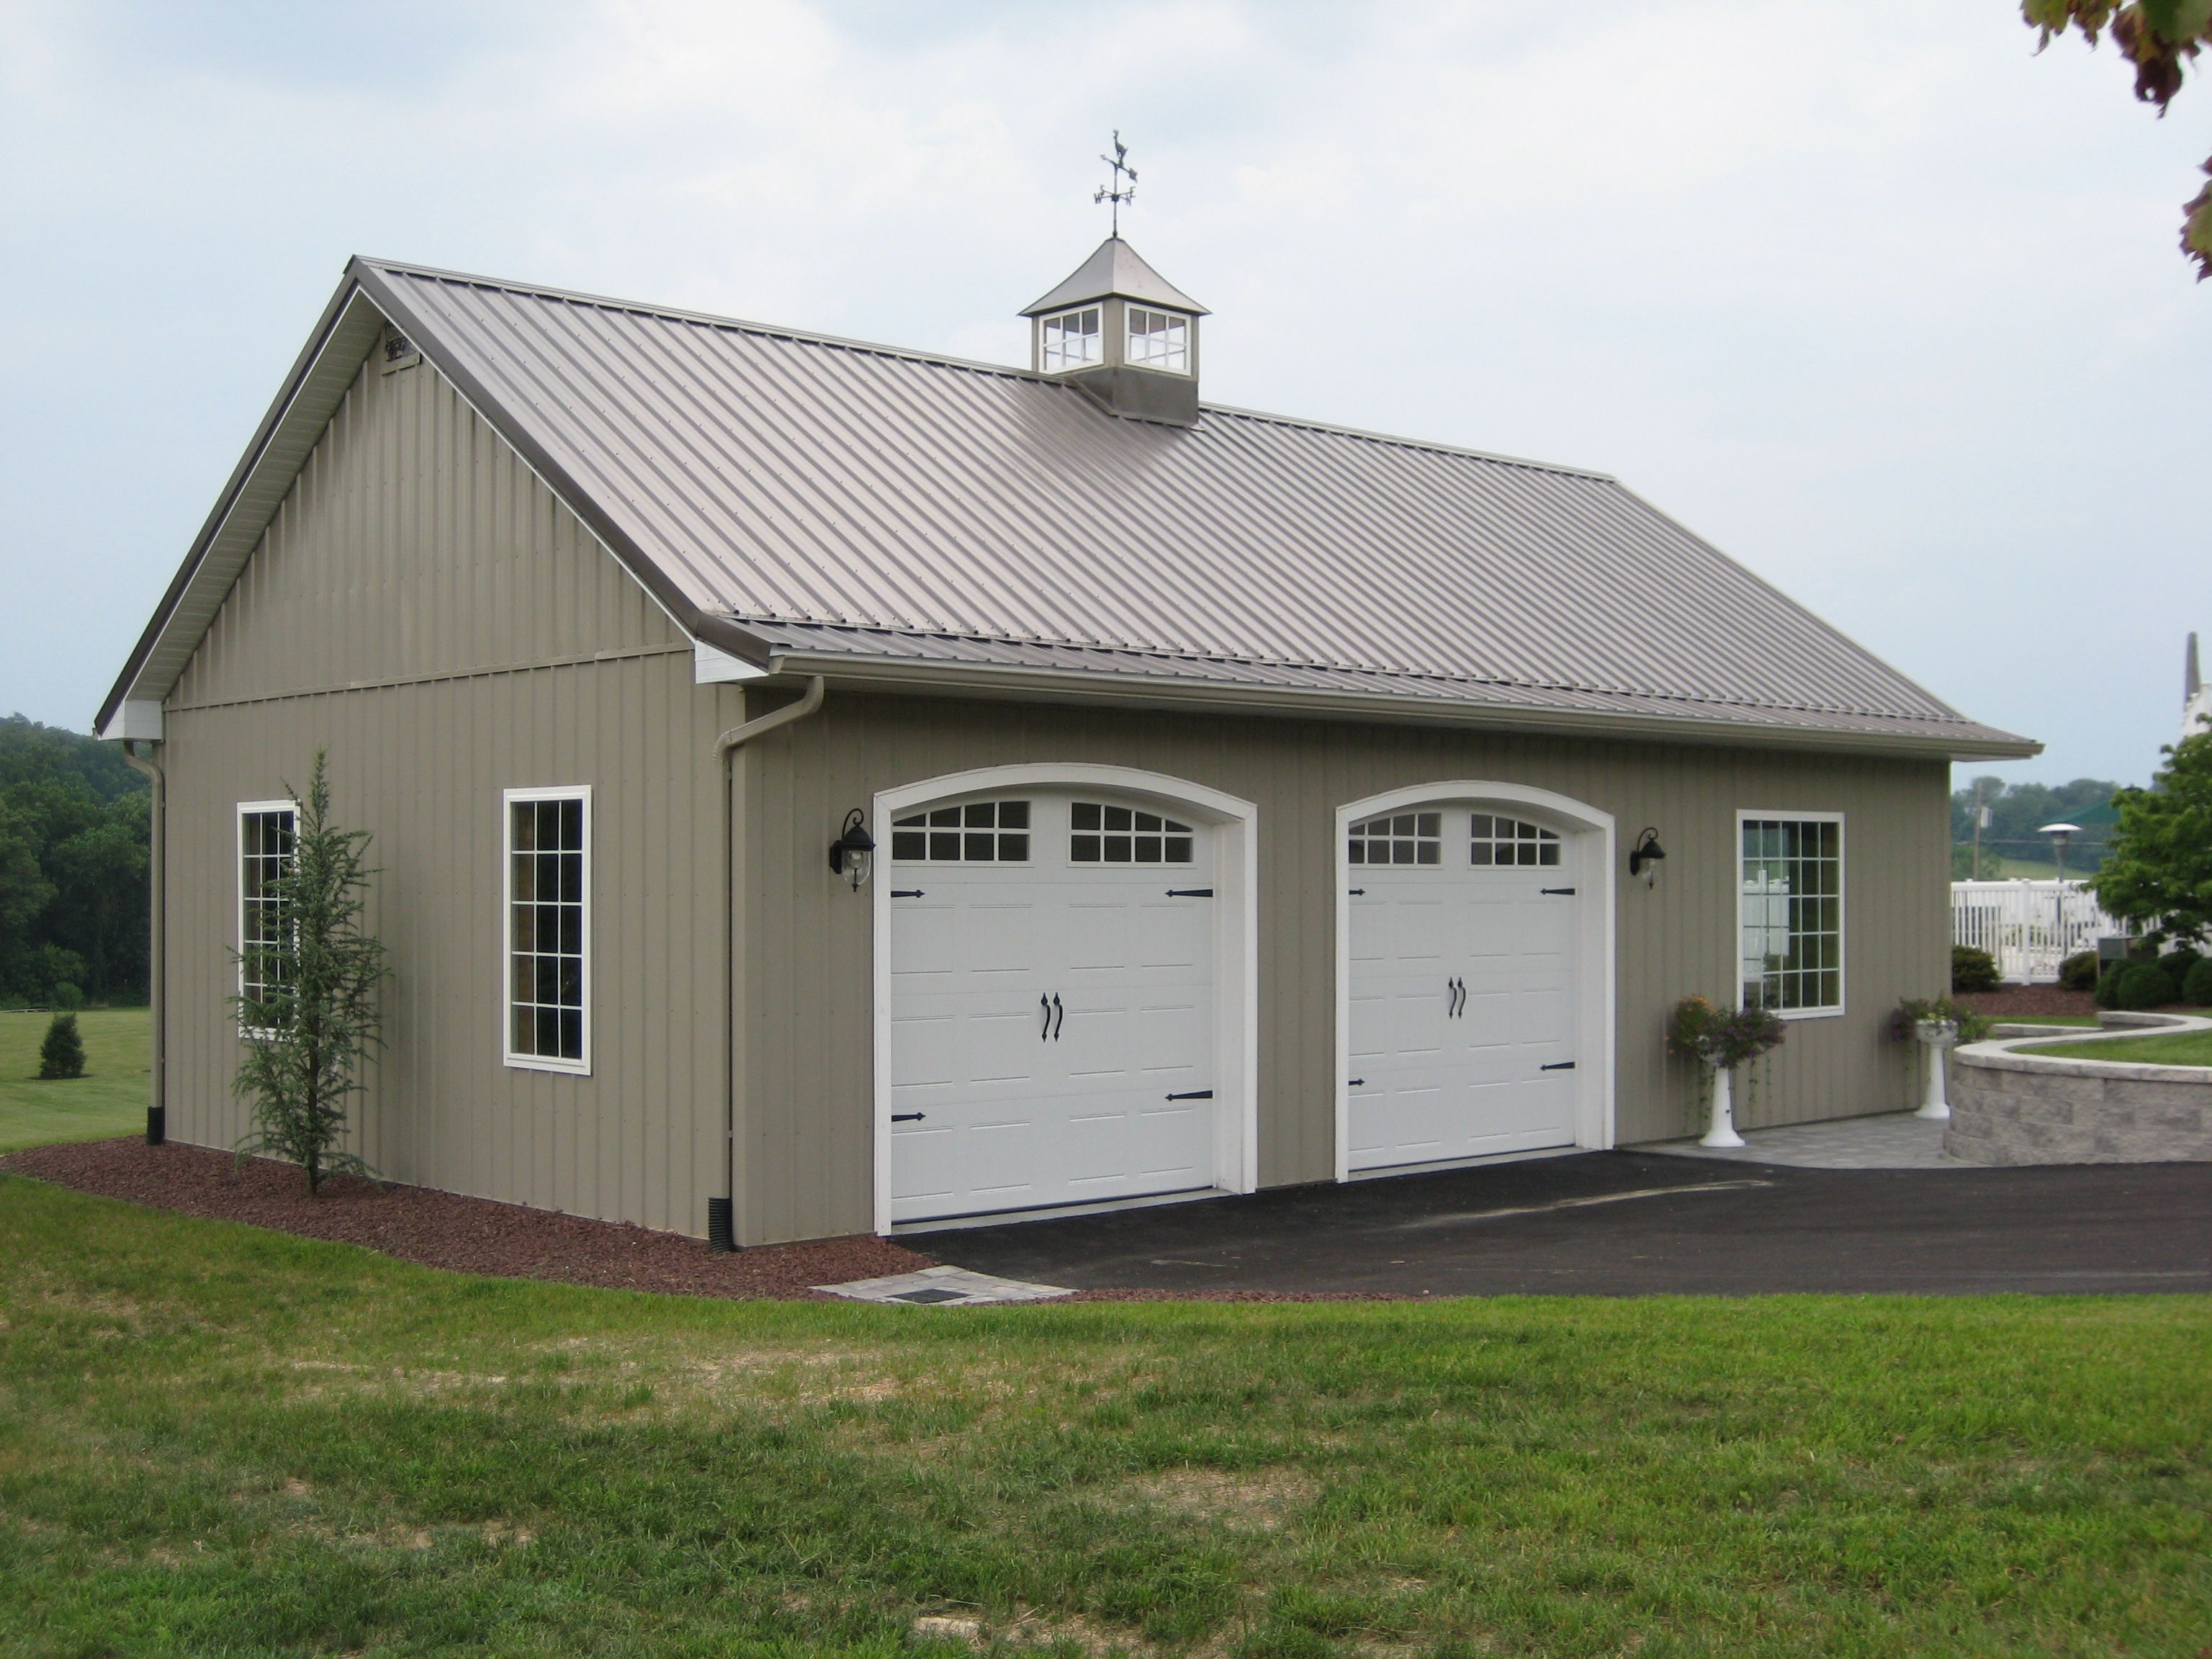 Pole Barn Garage Plans  Car Interior Design. 12 Foot Tall Garage Door. Arch Door. Garage Repairs. Appliance Door Pulls. Clopay Garage Door Bottom Seal Replacement. Media Cabinet With Glass Doors. Garage Cooling System. How To Install Interlocking Garage Floor Tiles